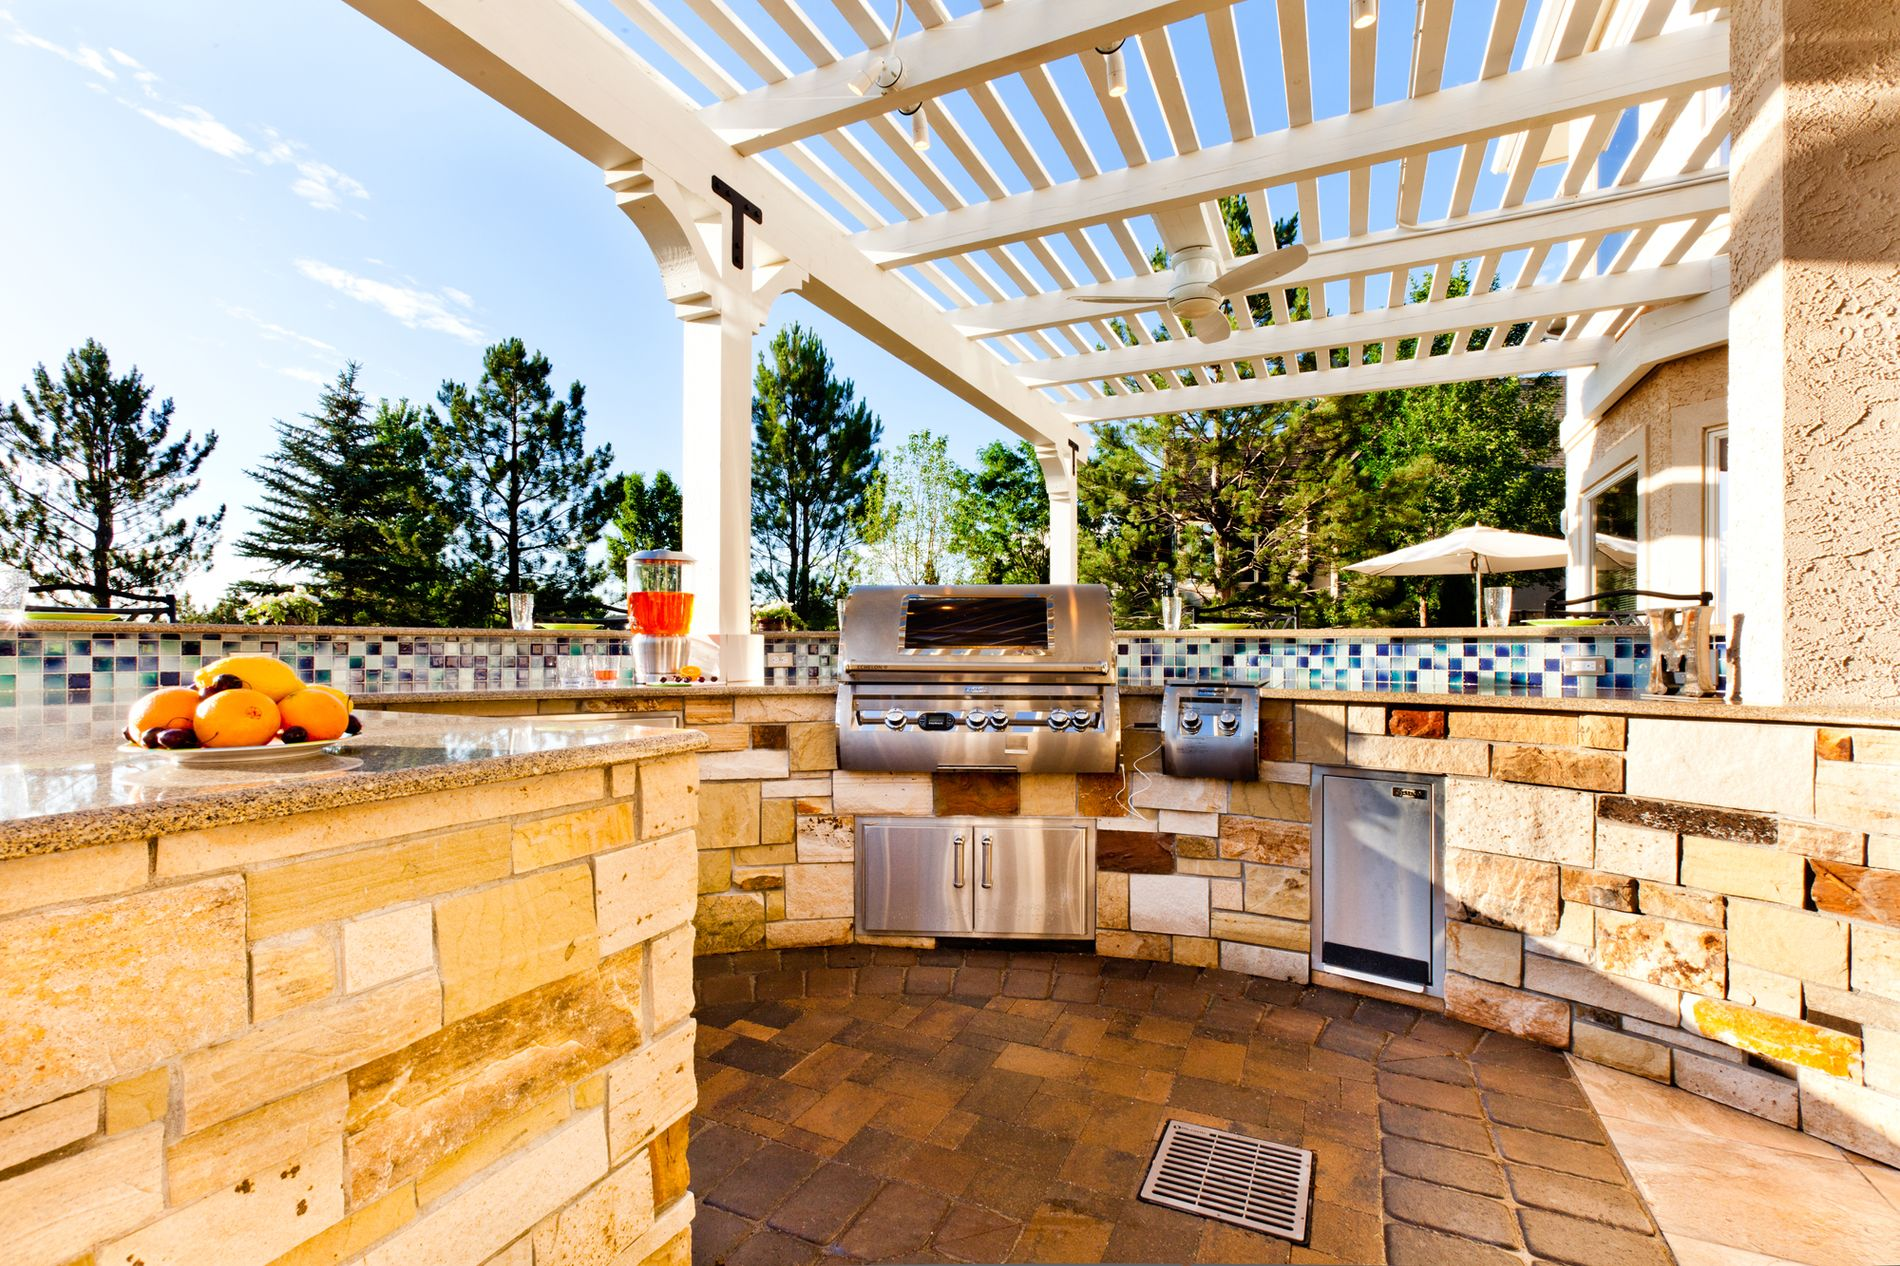 Curved outdoor kitchen with white pergola